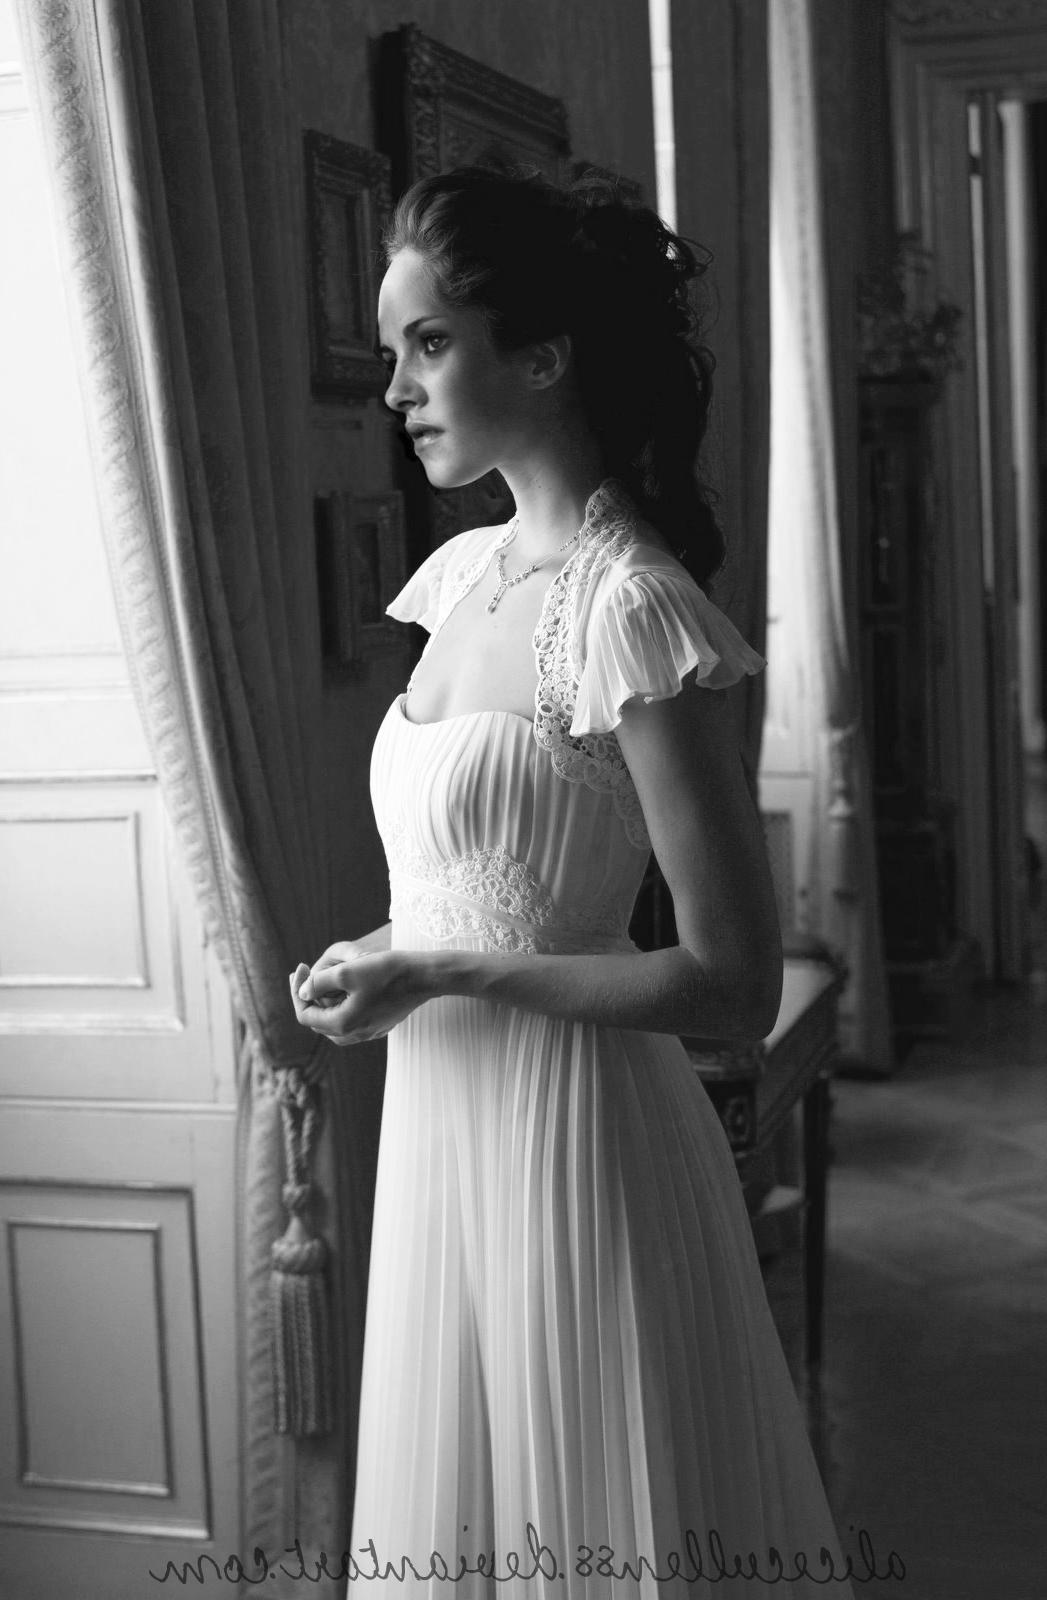 bella swan wedding dress manip by alicecullen88   414.01 KB   Rating: 75